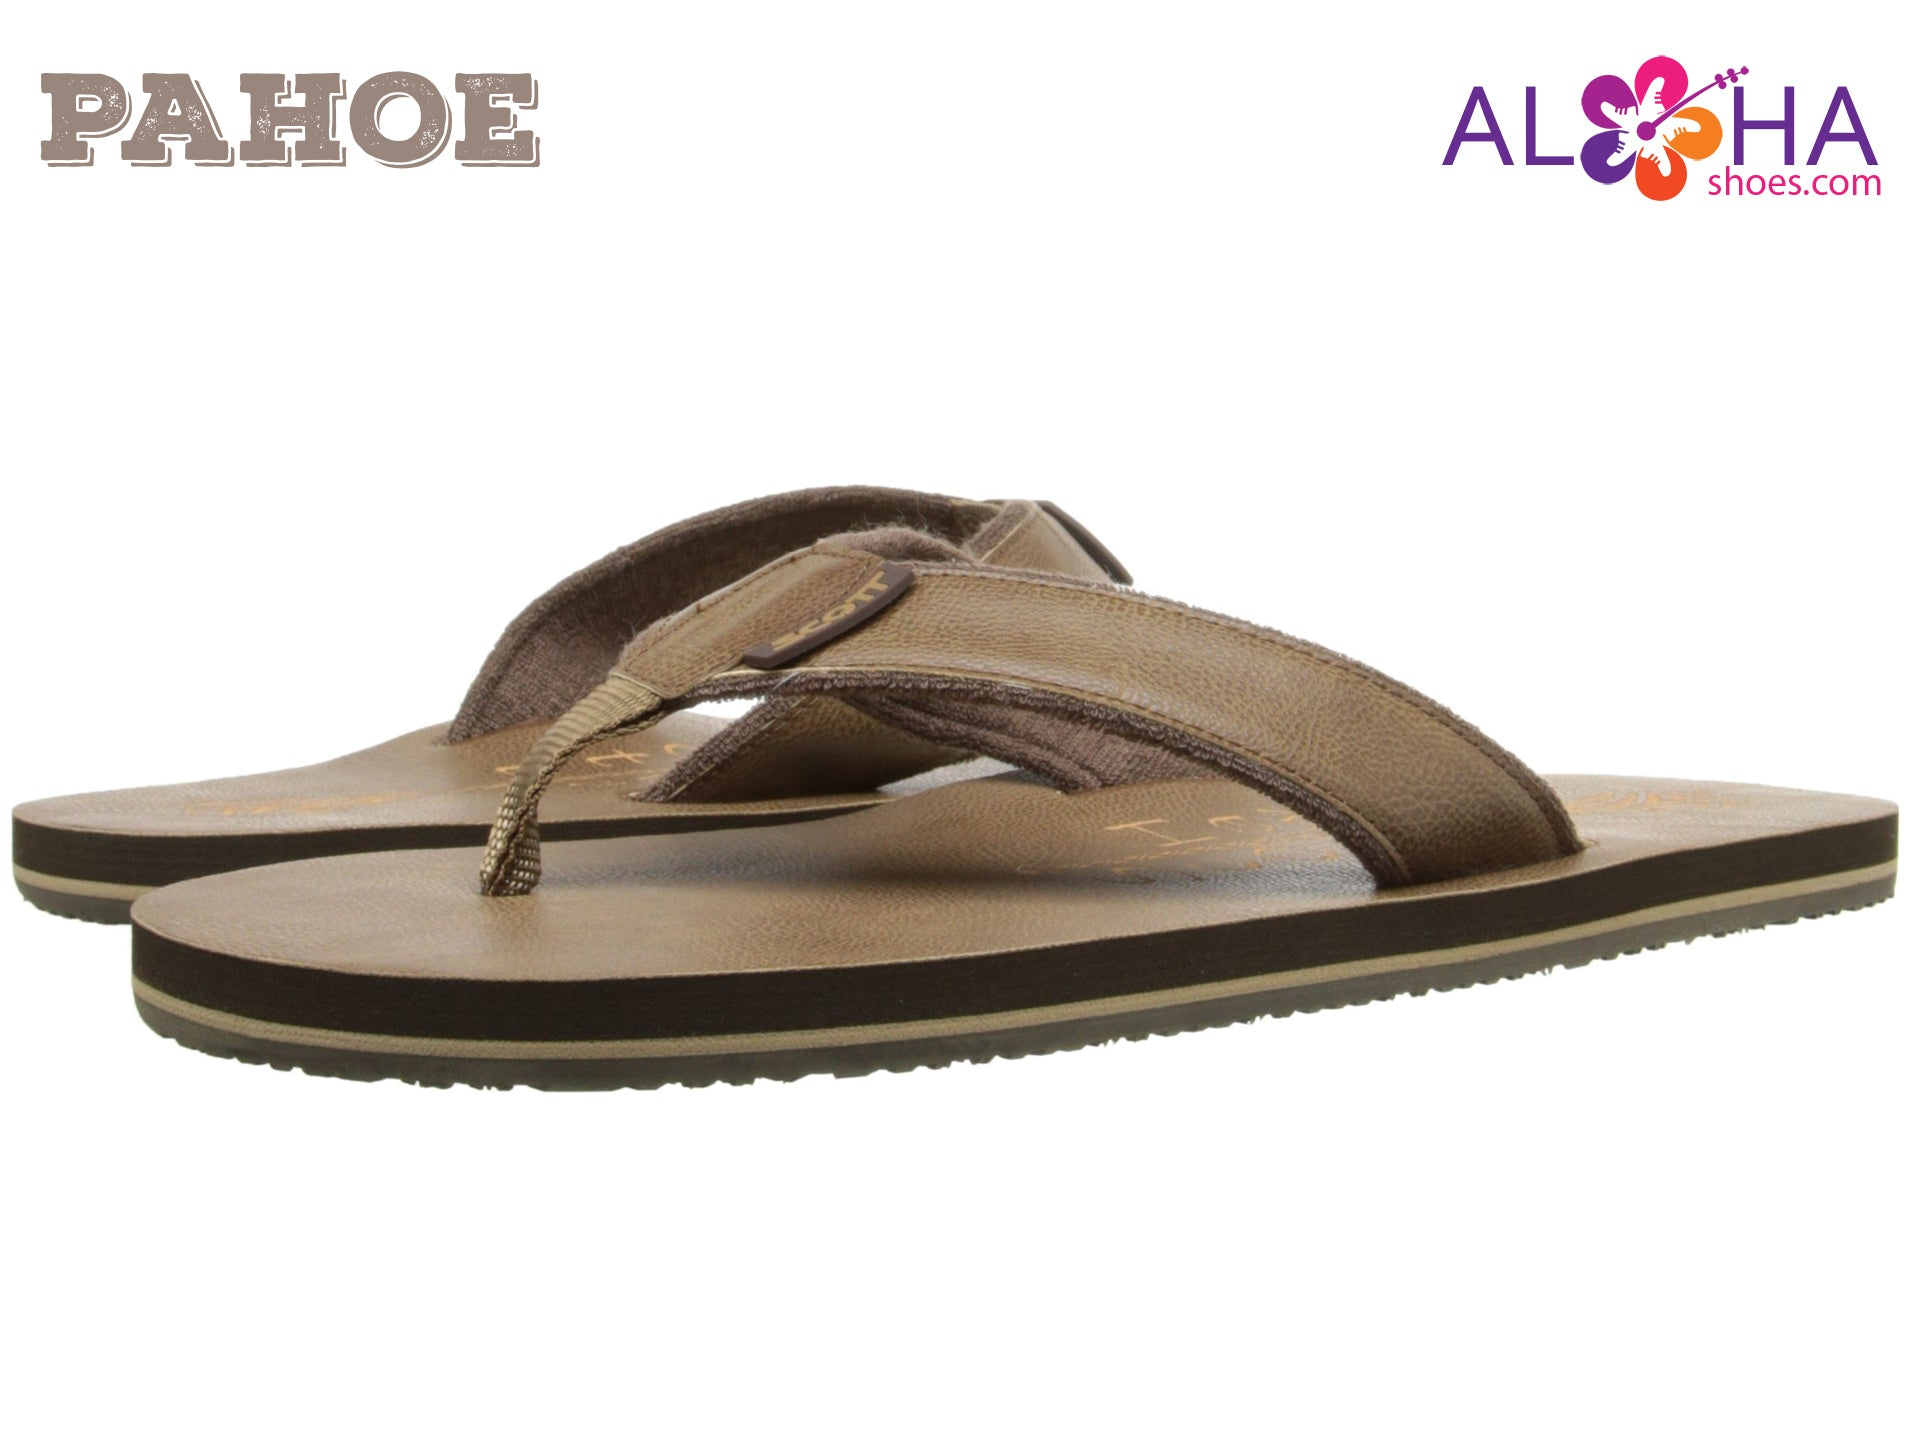 f8b35bc22 Scott Hawaii Men s Pahoe Brown Sandal - AlohaShoes.com